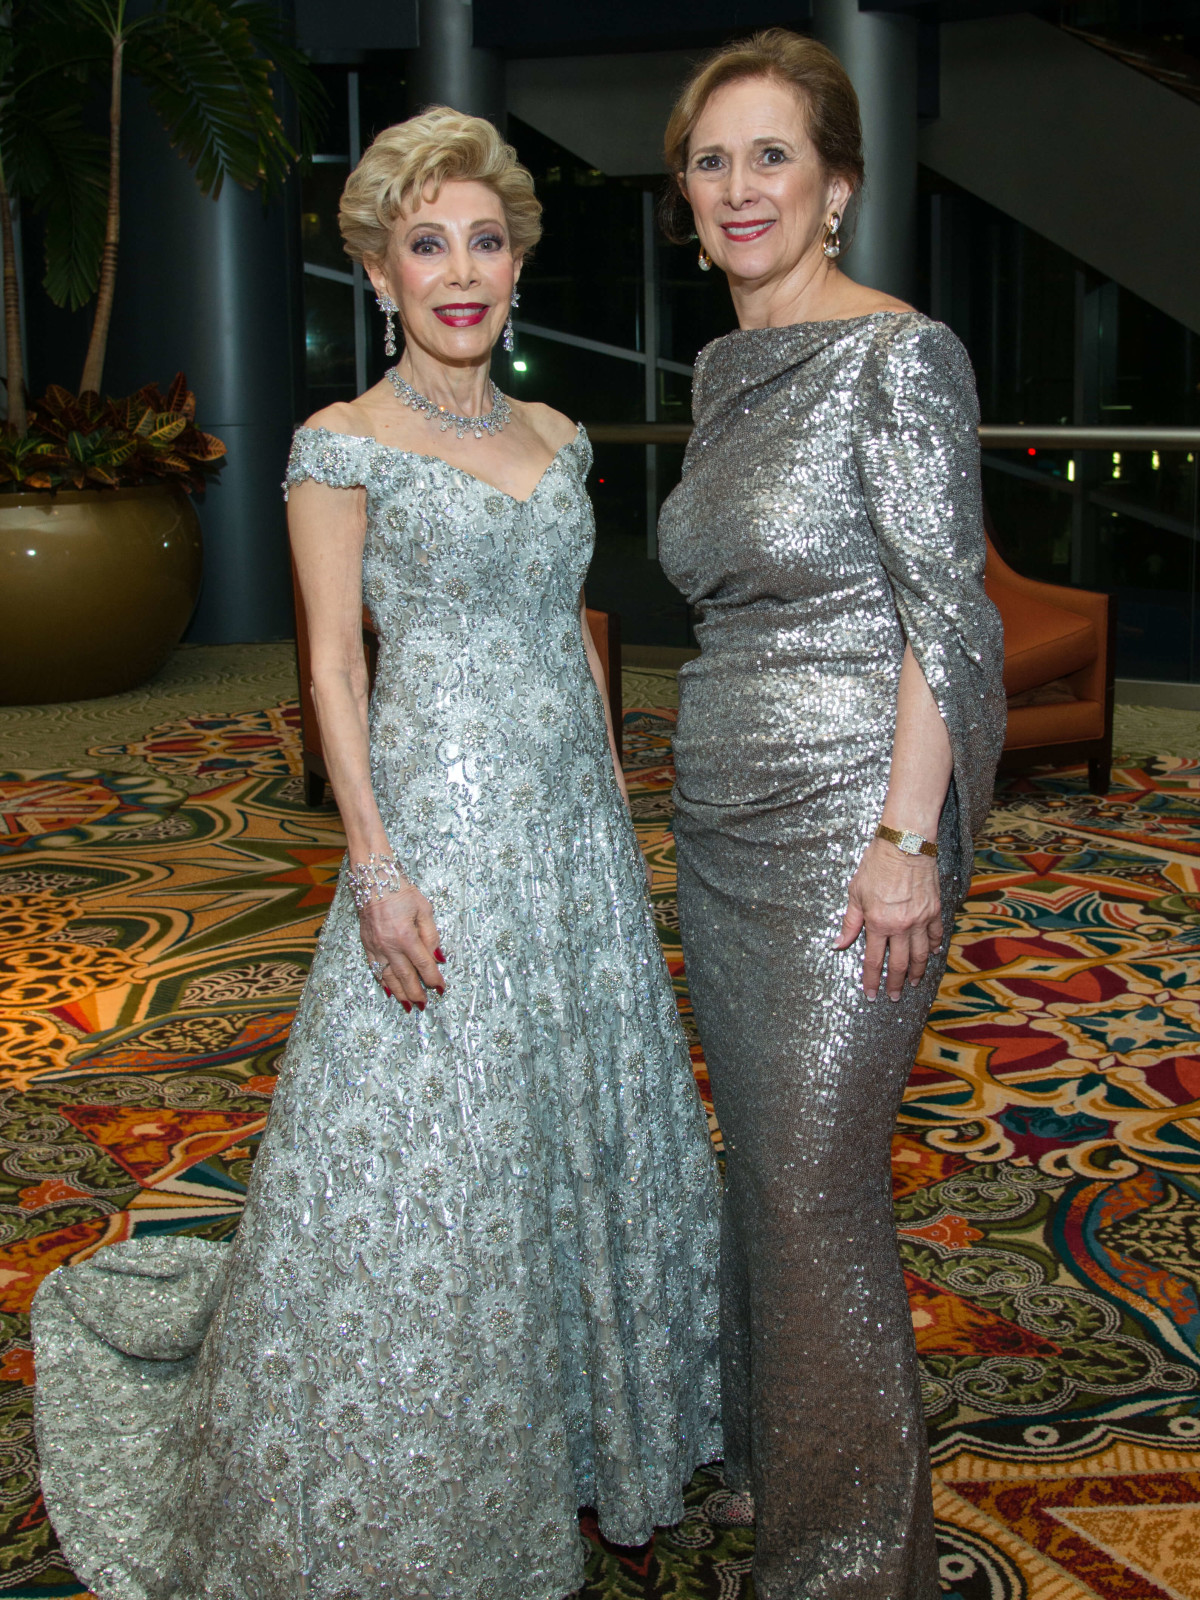 Houston, Women of Distinction fashionable gowns, Feb 2017, Margaret Alkek Williams, Franelle Rogers